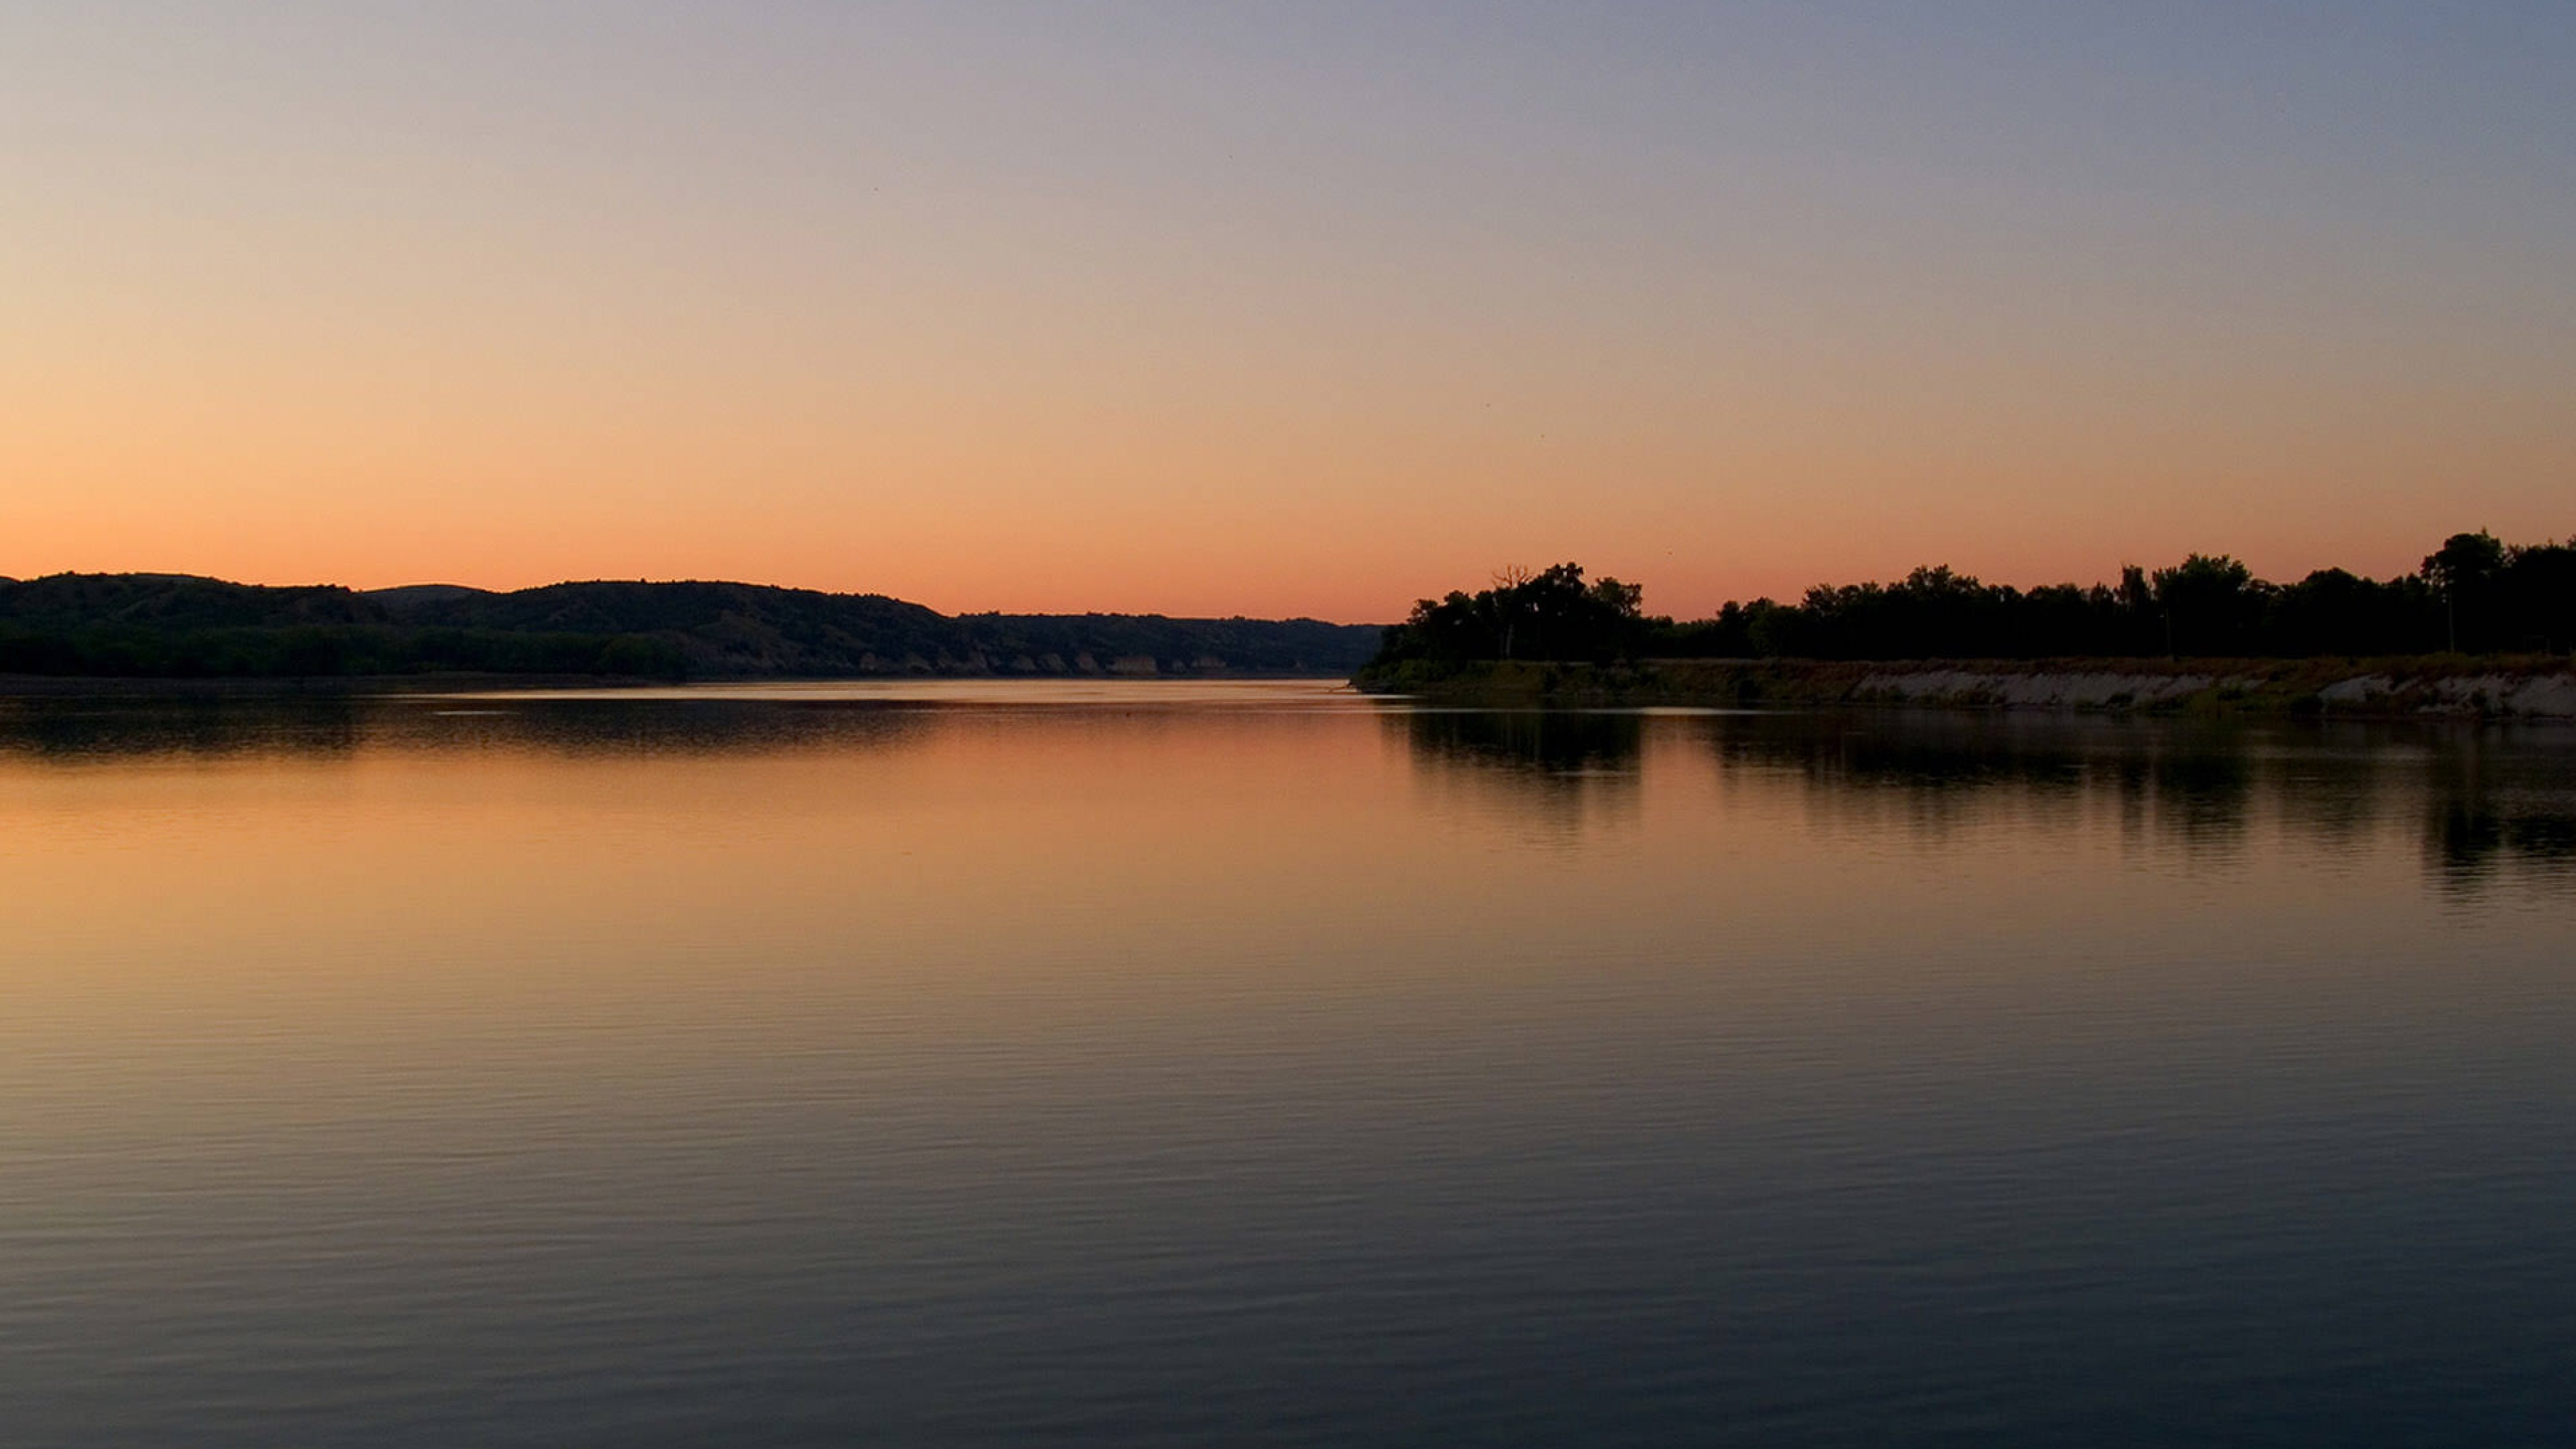 Image of Missouri River with sun setting on water